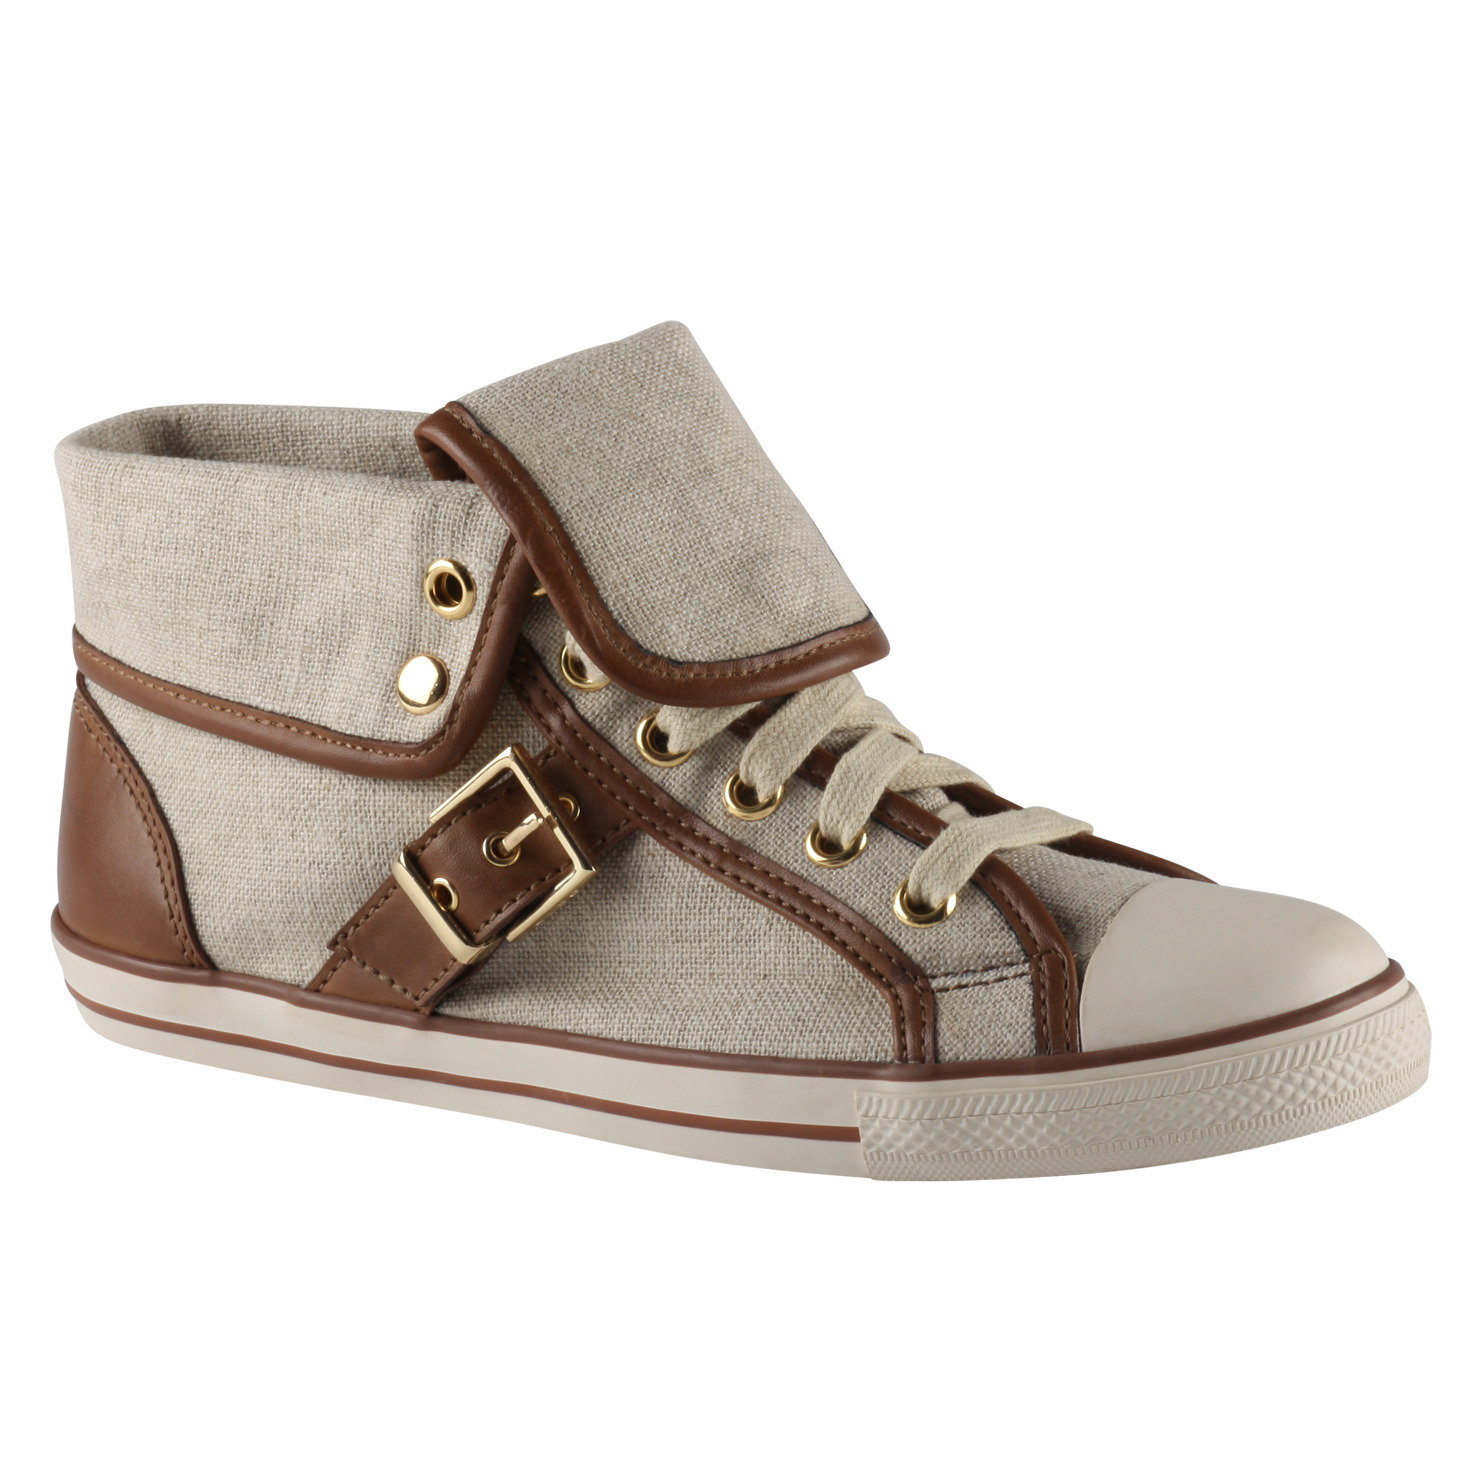 Check out all the best women's shoes on sale from brand names you know and love. From sneakers to sandals and booties to boat shoes, there are thousands of styles for frugal shoppers of all kinds. From sneakers to sandals and booties to boat shoes, there are thousands of .